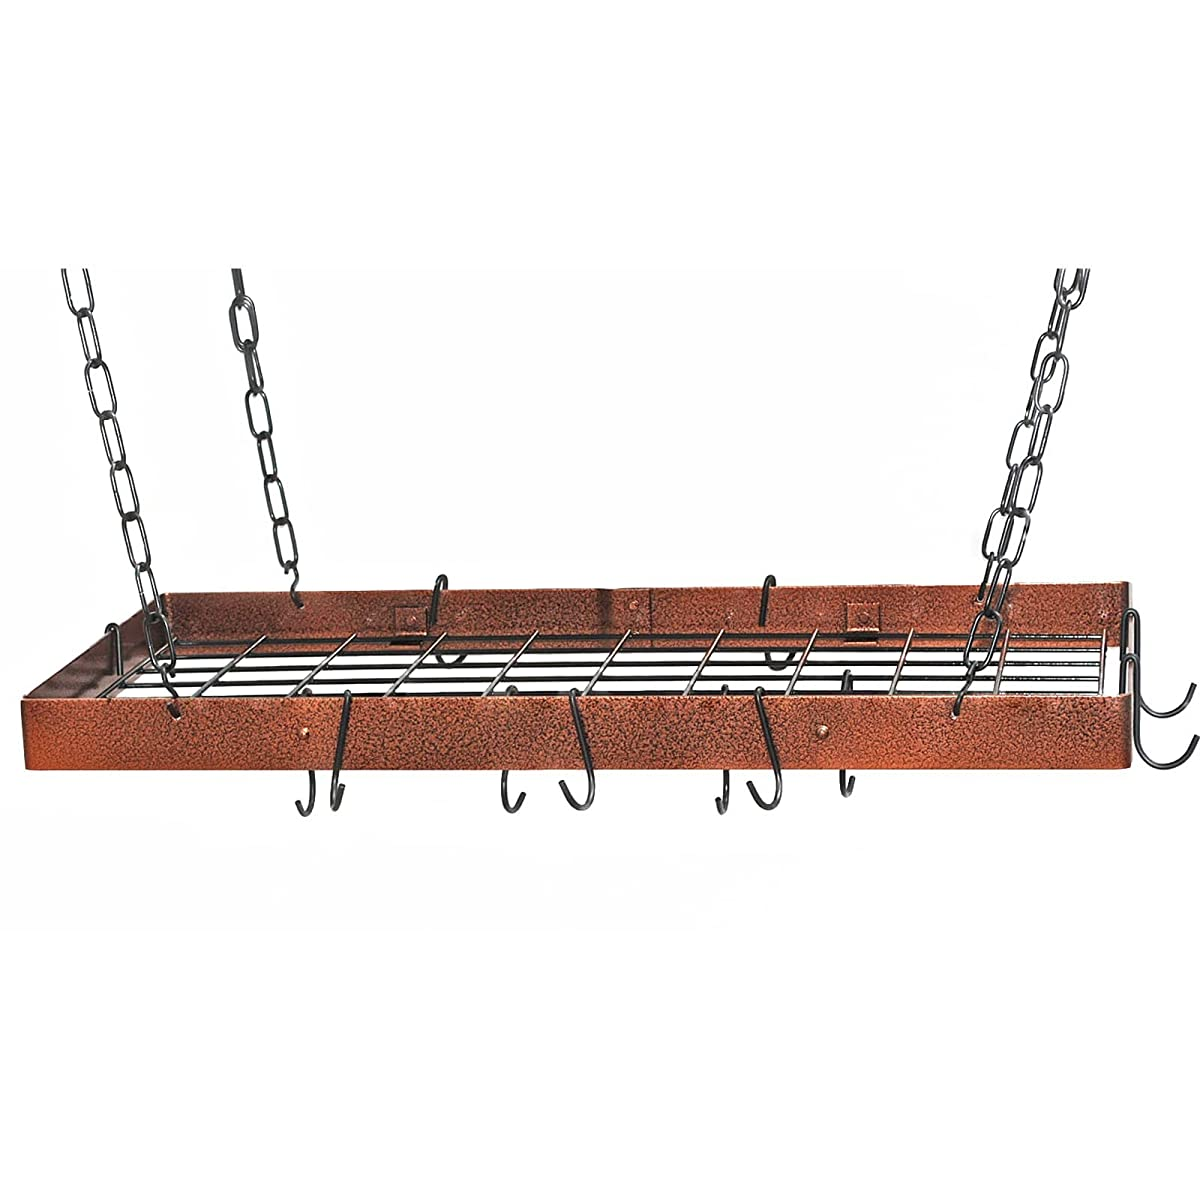 Rogar Hammered Steel Rectangular Pot Rack with Grid and Chrome Accessories 30-in.